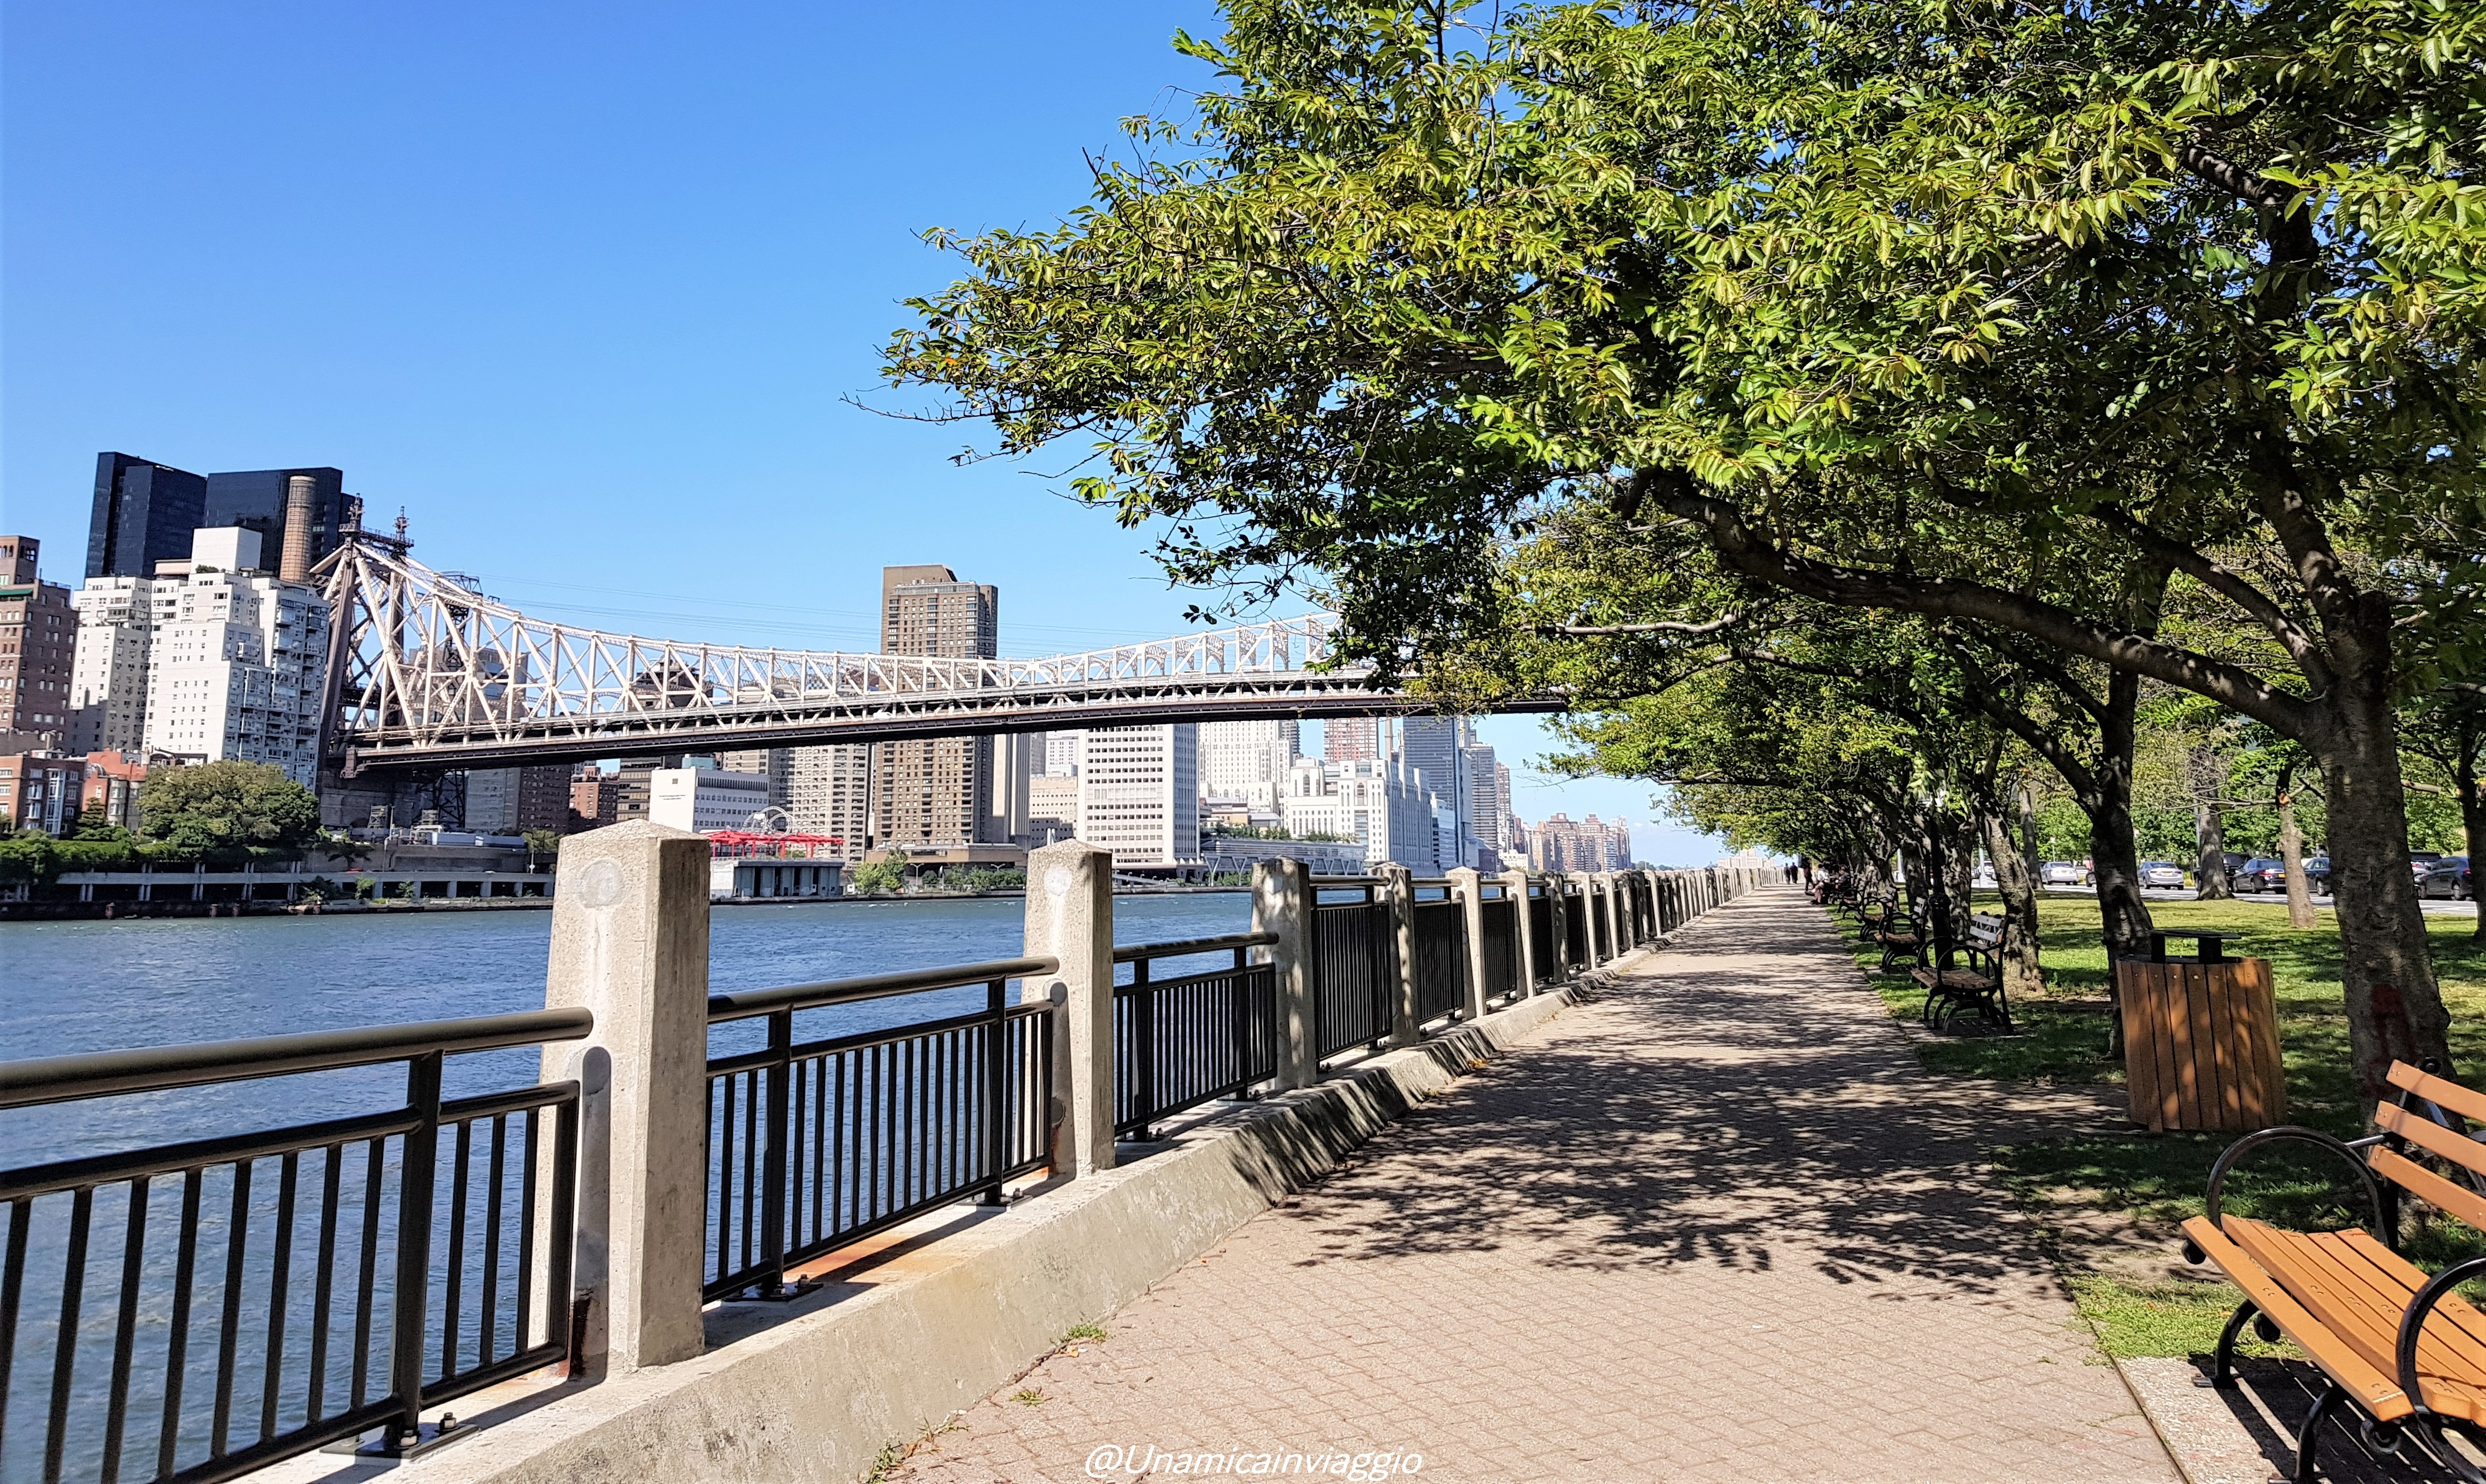 cosa vedere a roosevelt island